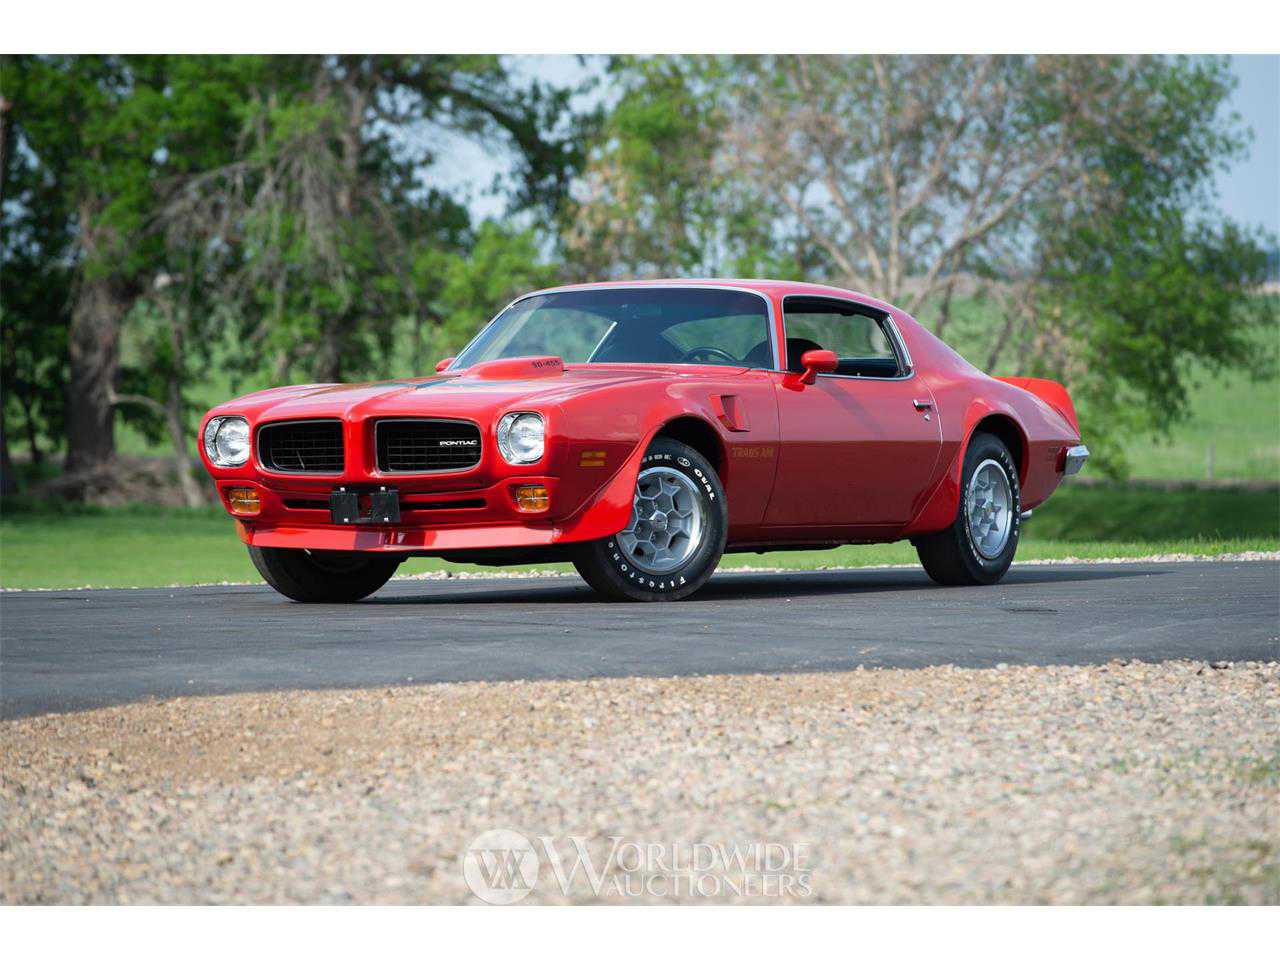 1973 Pontiac Firebird Trans Am 455 Super Duty For Sale In